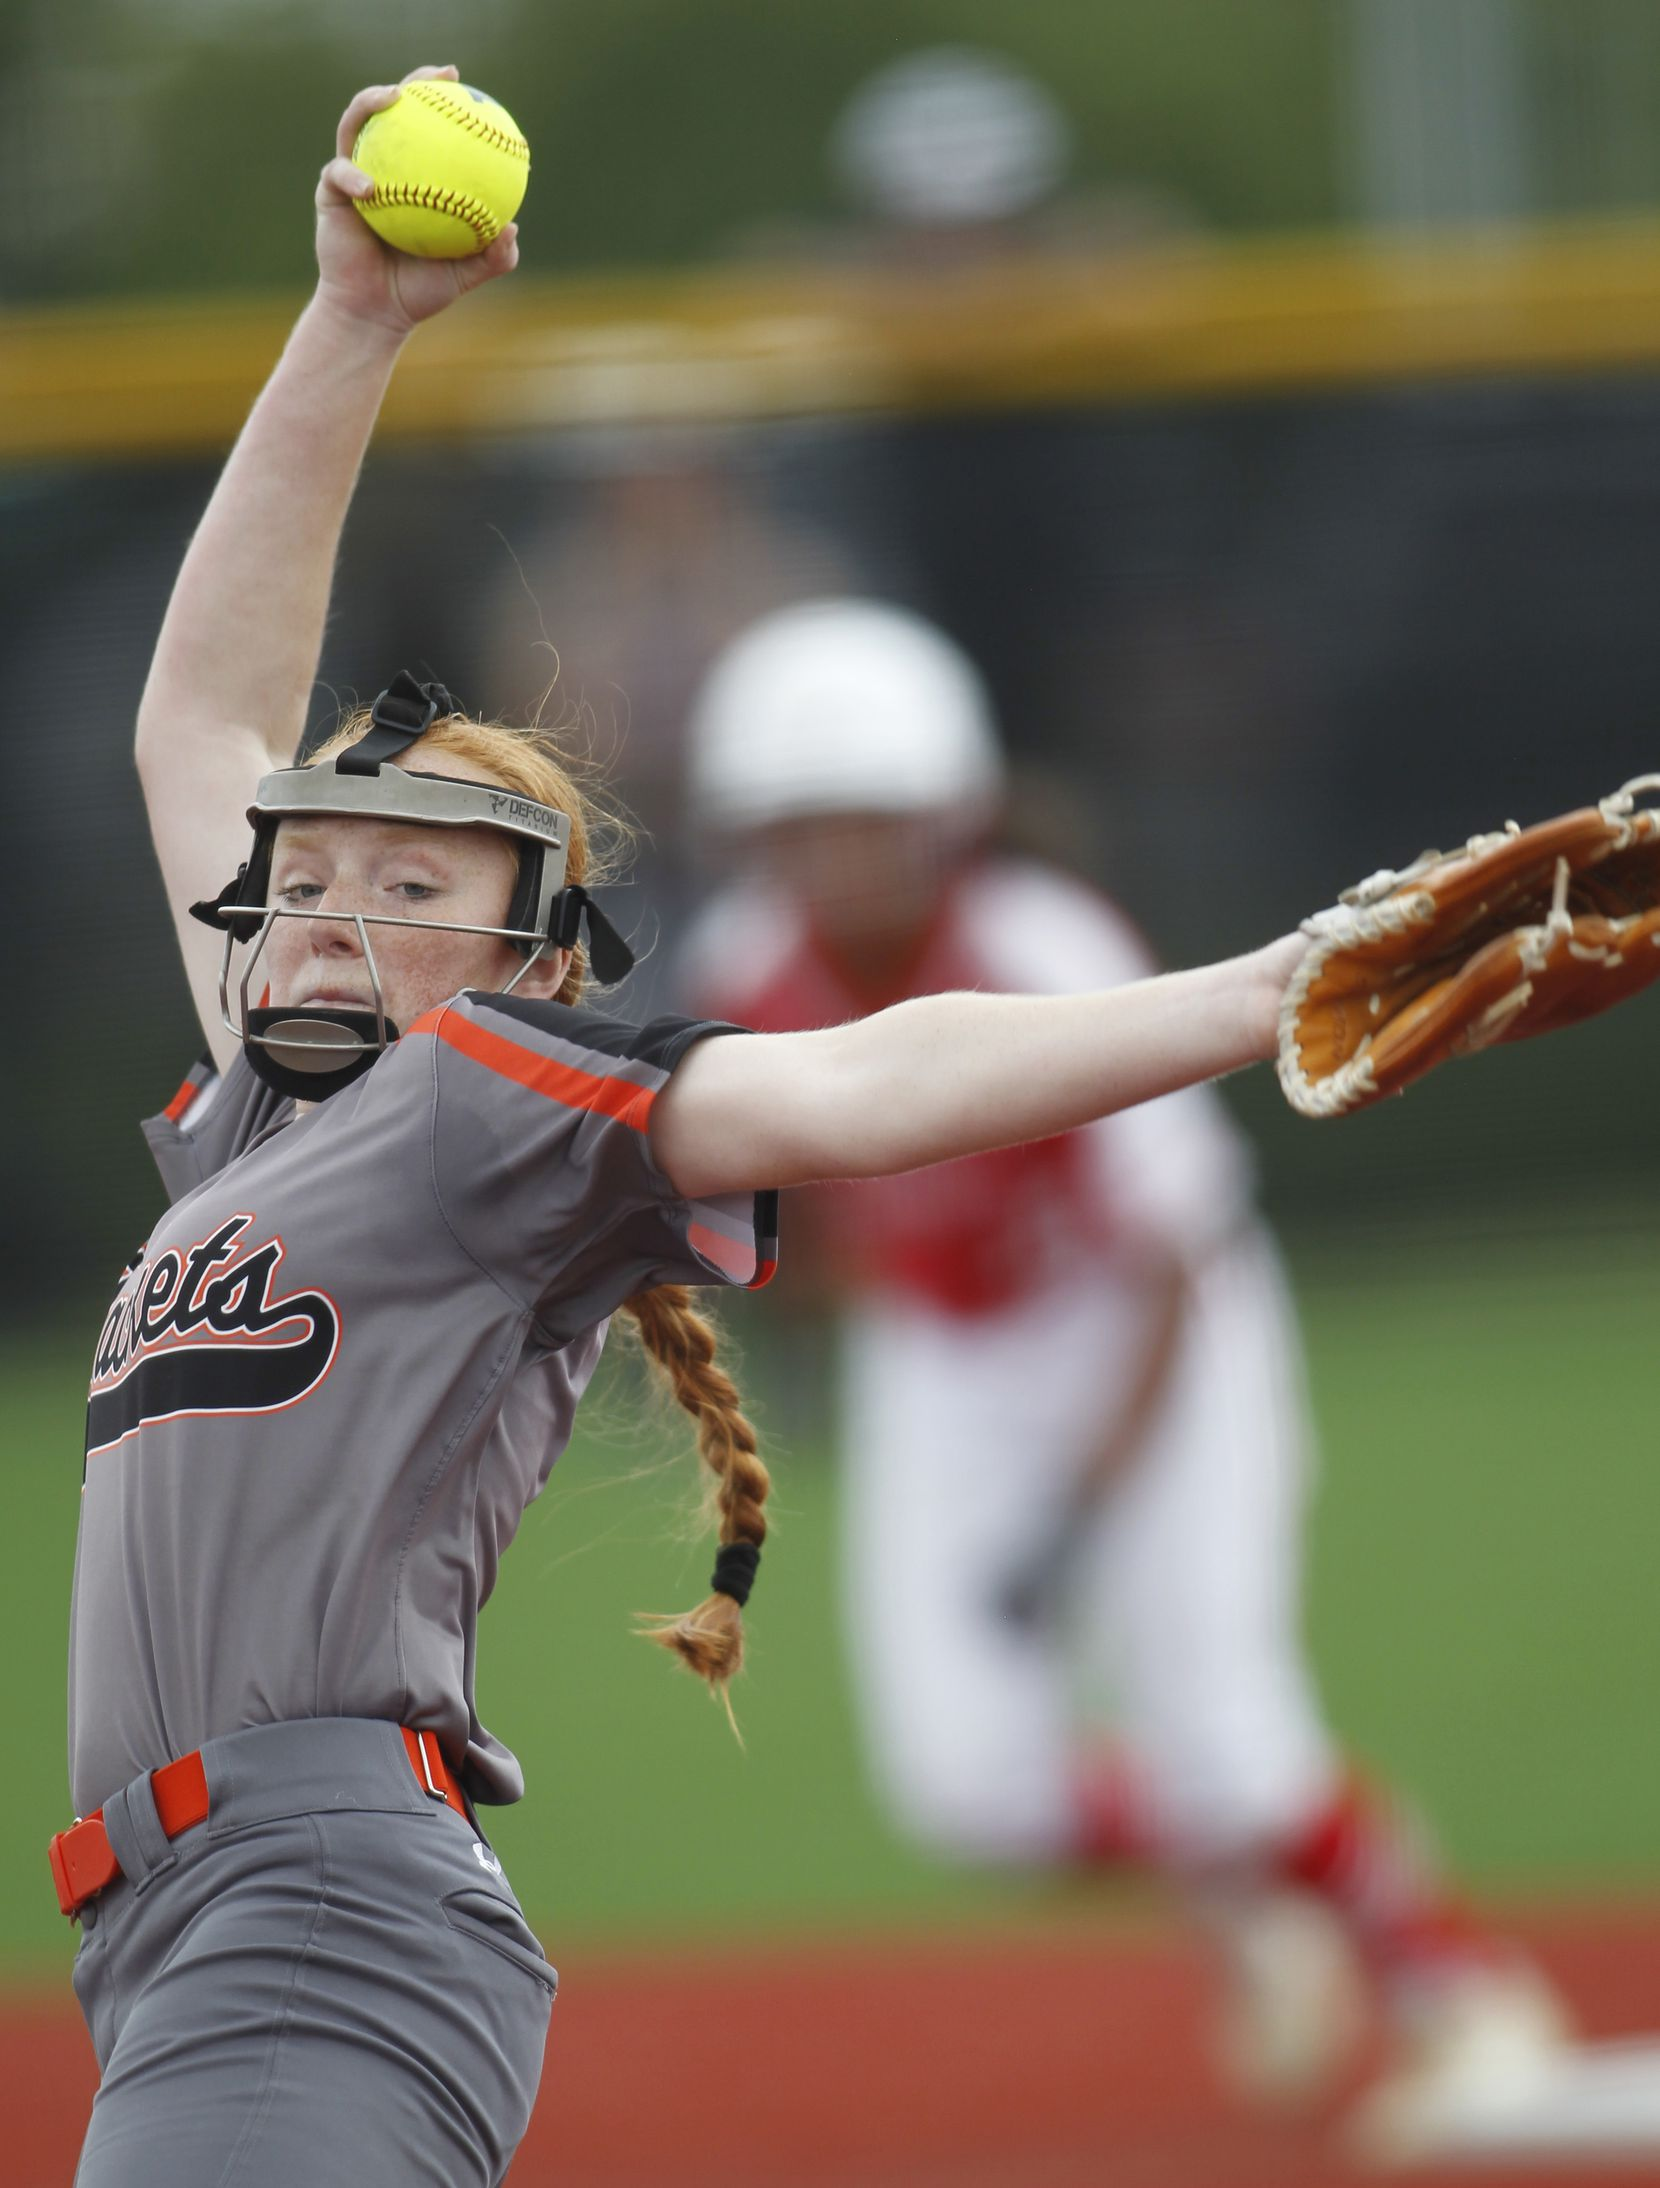 Rockwall pitcher Ainsley Pemberton (9) delivers a pitch to a Converse Judson batter with a runner at 2nd base during the bottom of the first inning of play. The two teams played their UIL 6A state softball semifinal game at Leander Glenn High School in Leander on June 4, 2021. (Steve Hamm/ Special Contributor)